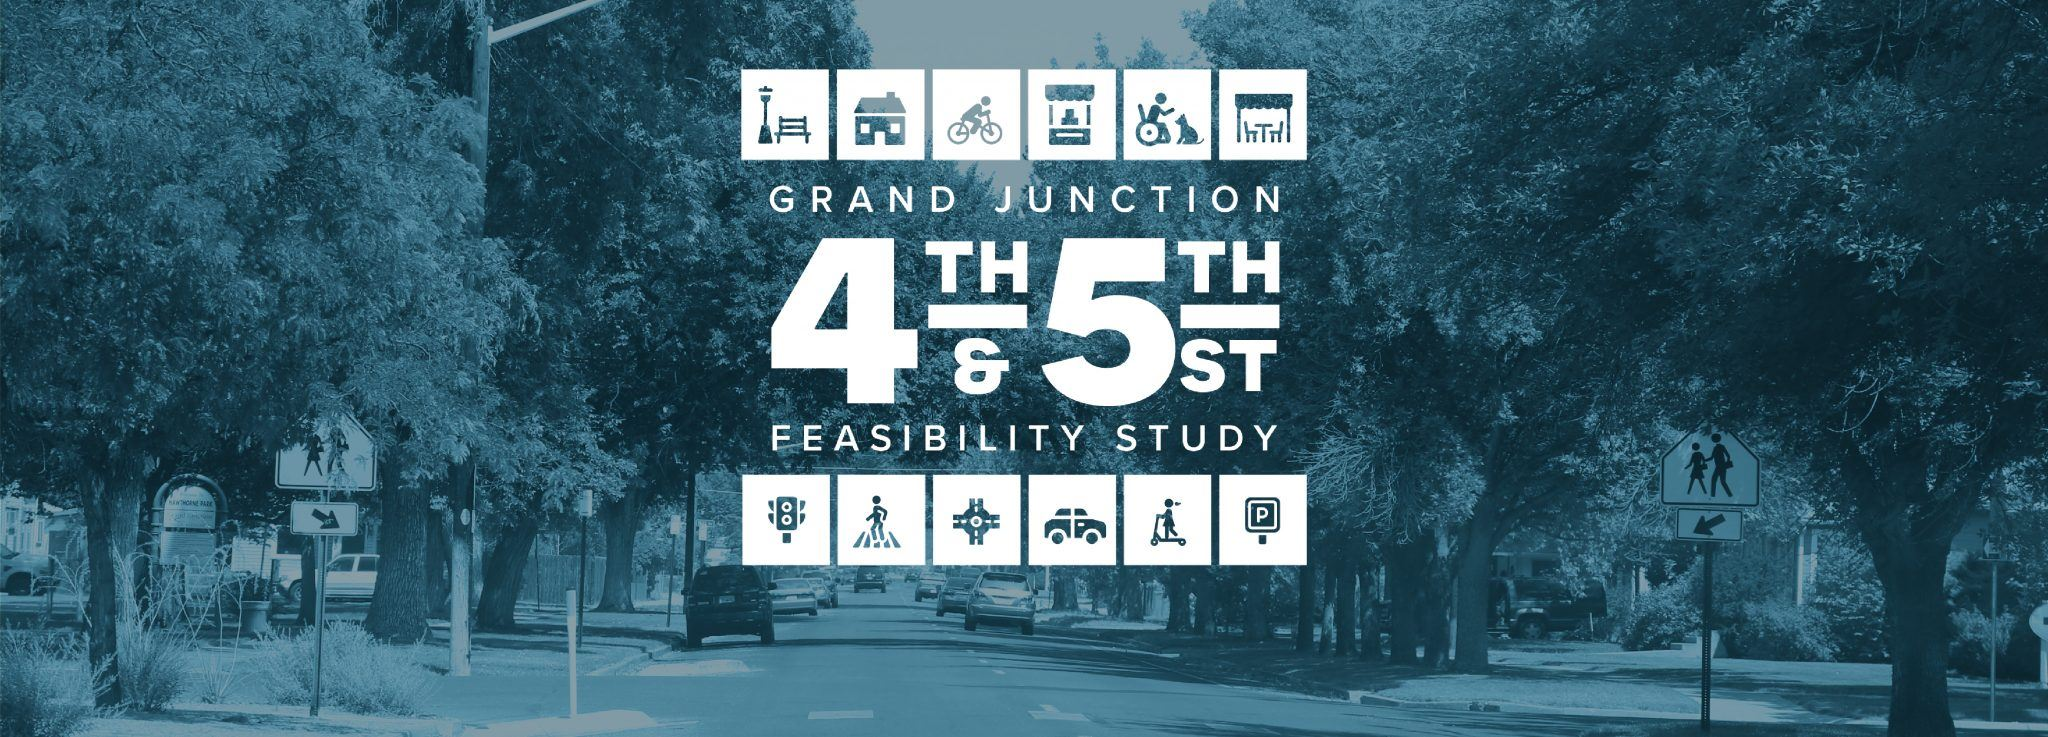 4th and 5th street feasibility study